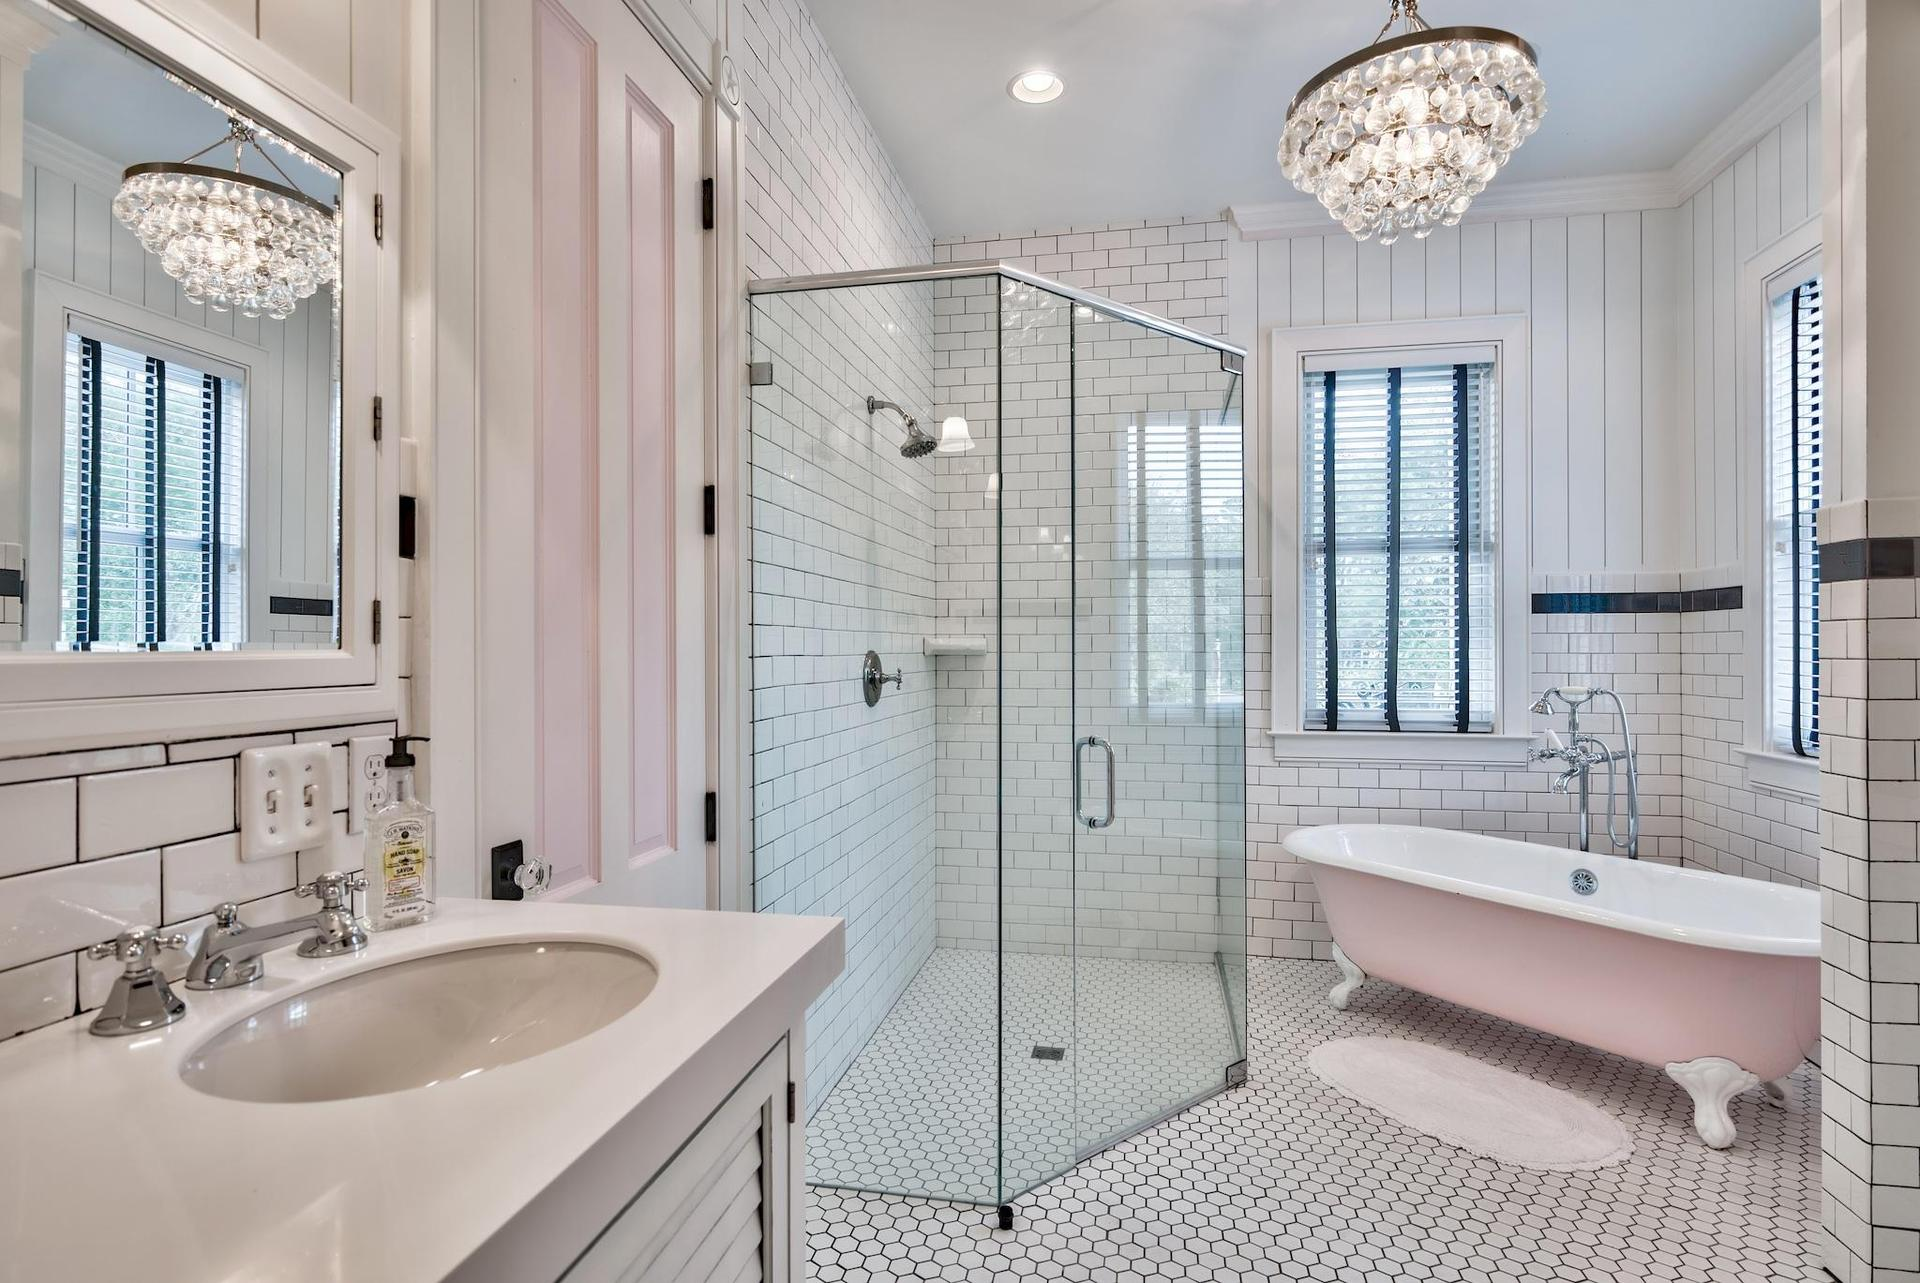 Master bath with a claw foot tub and crystal chandelier